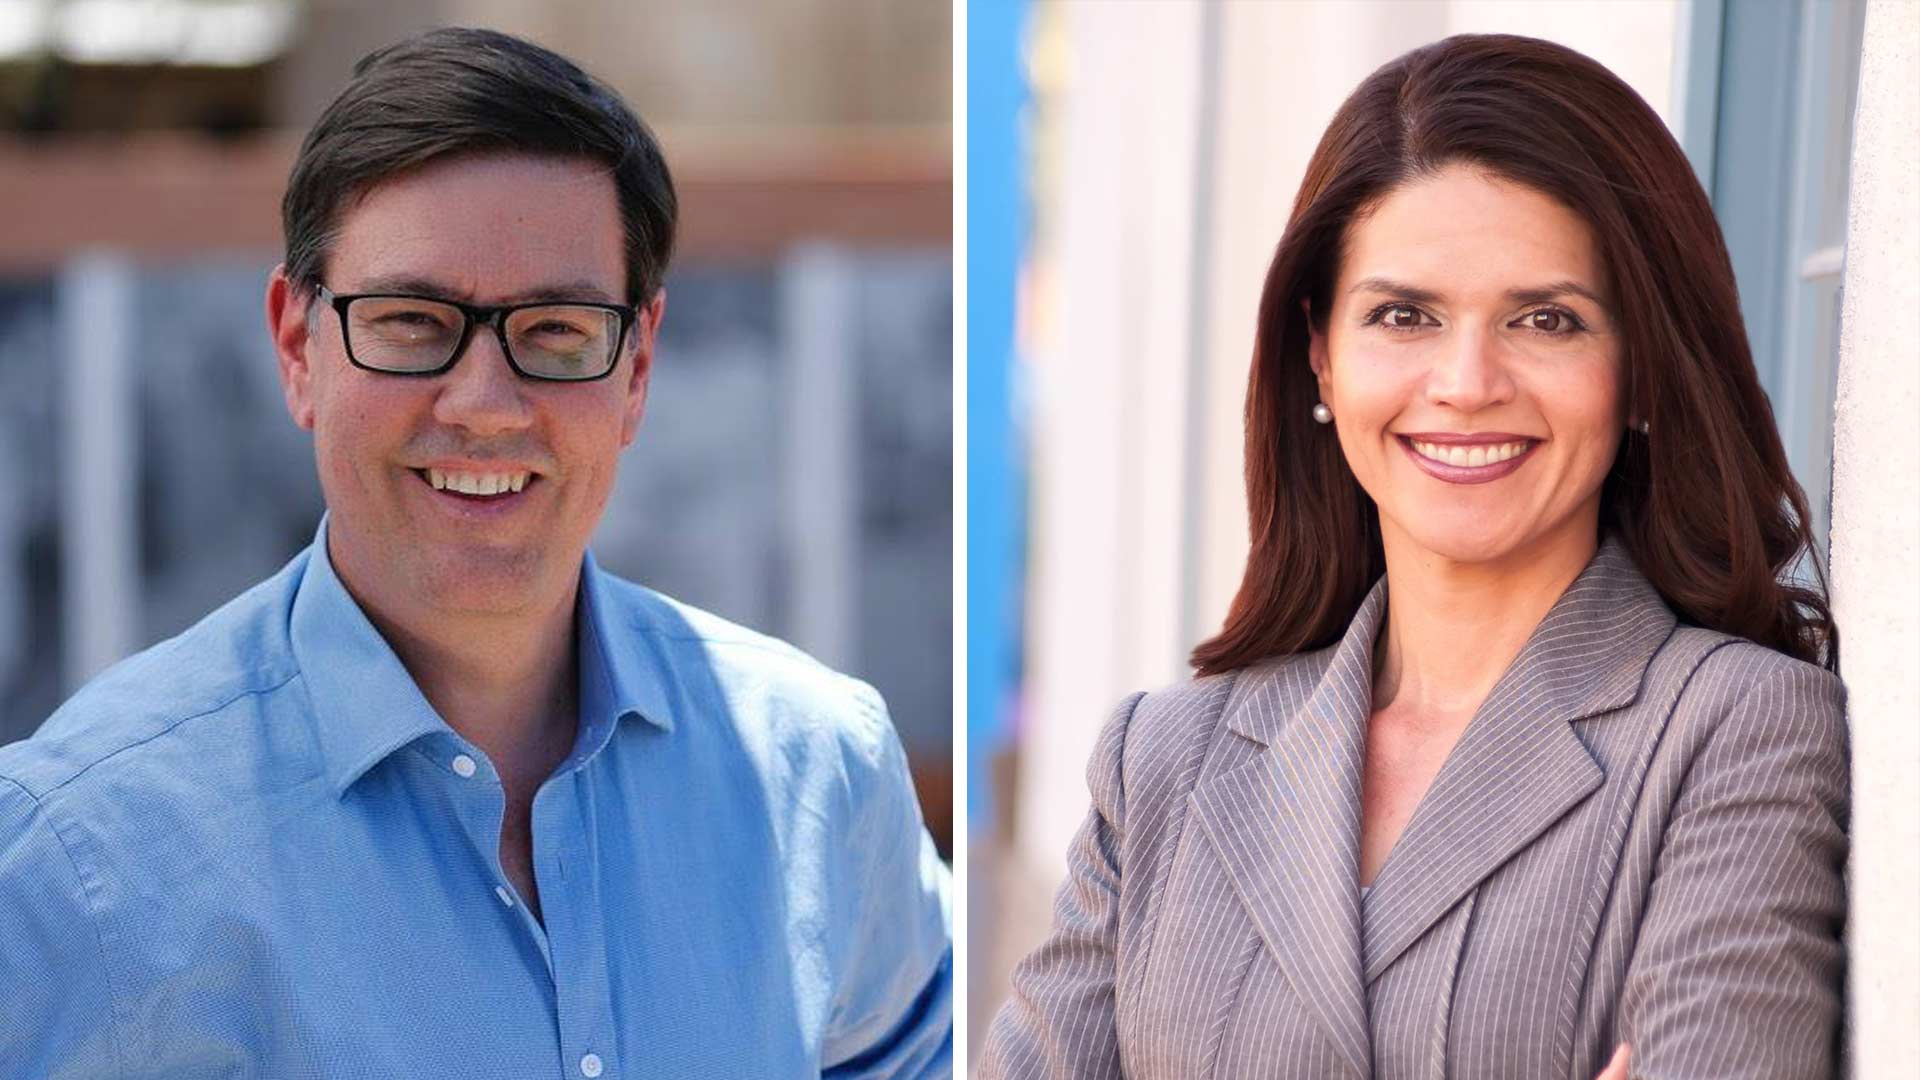 Steve Farley and Regina Romero, via the candidates' Facebook pages.